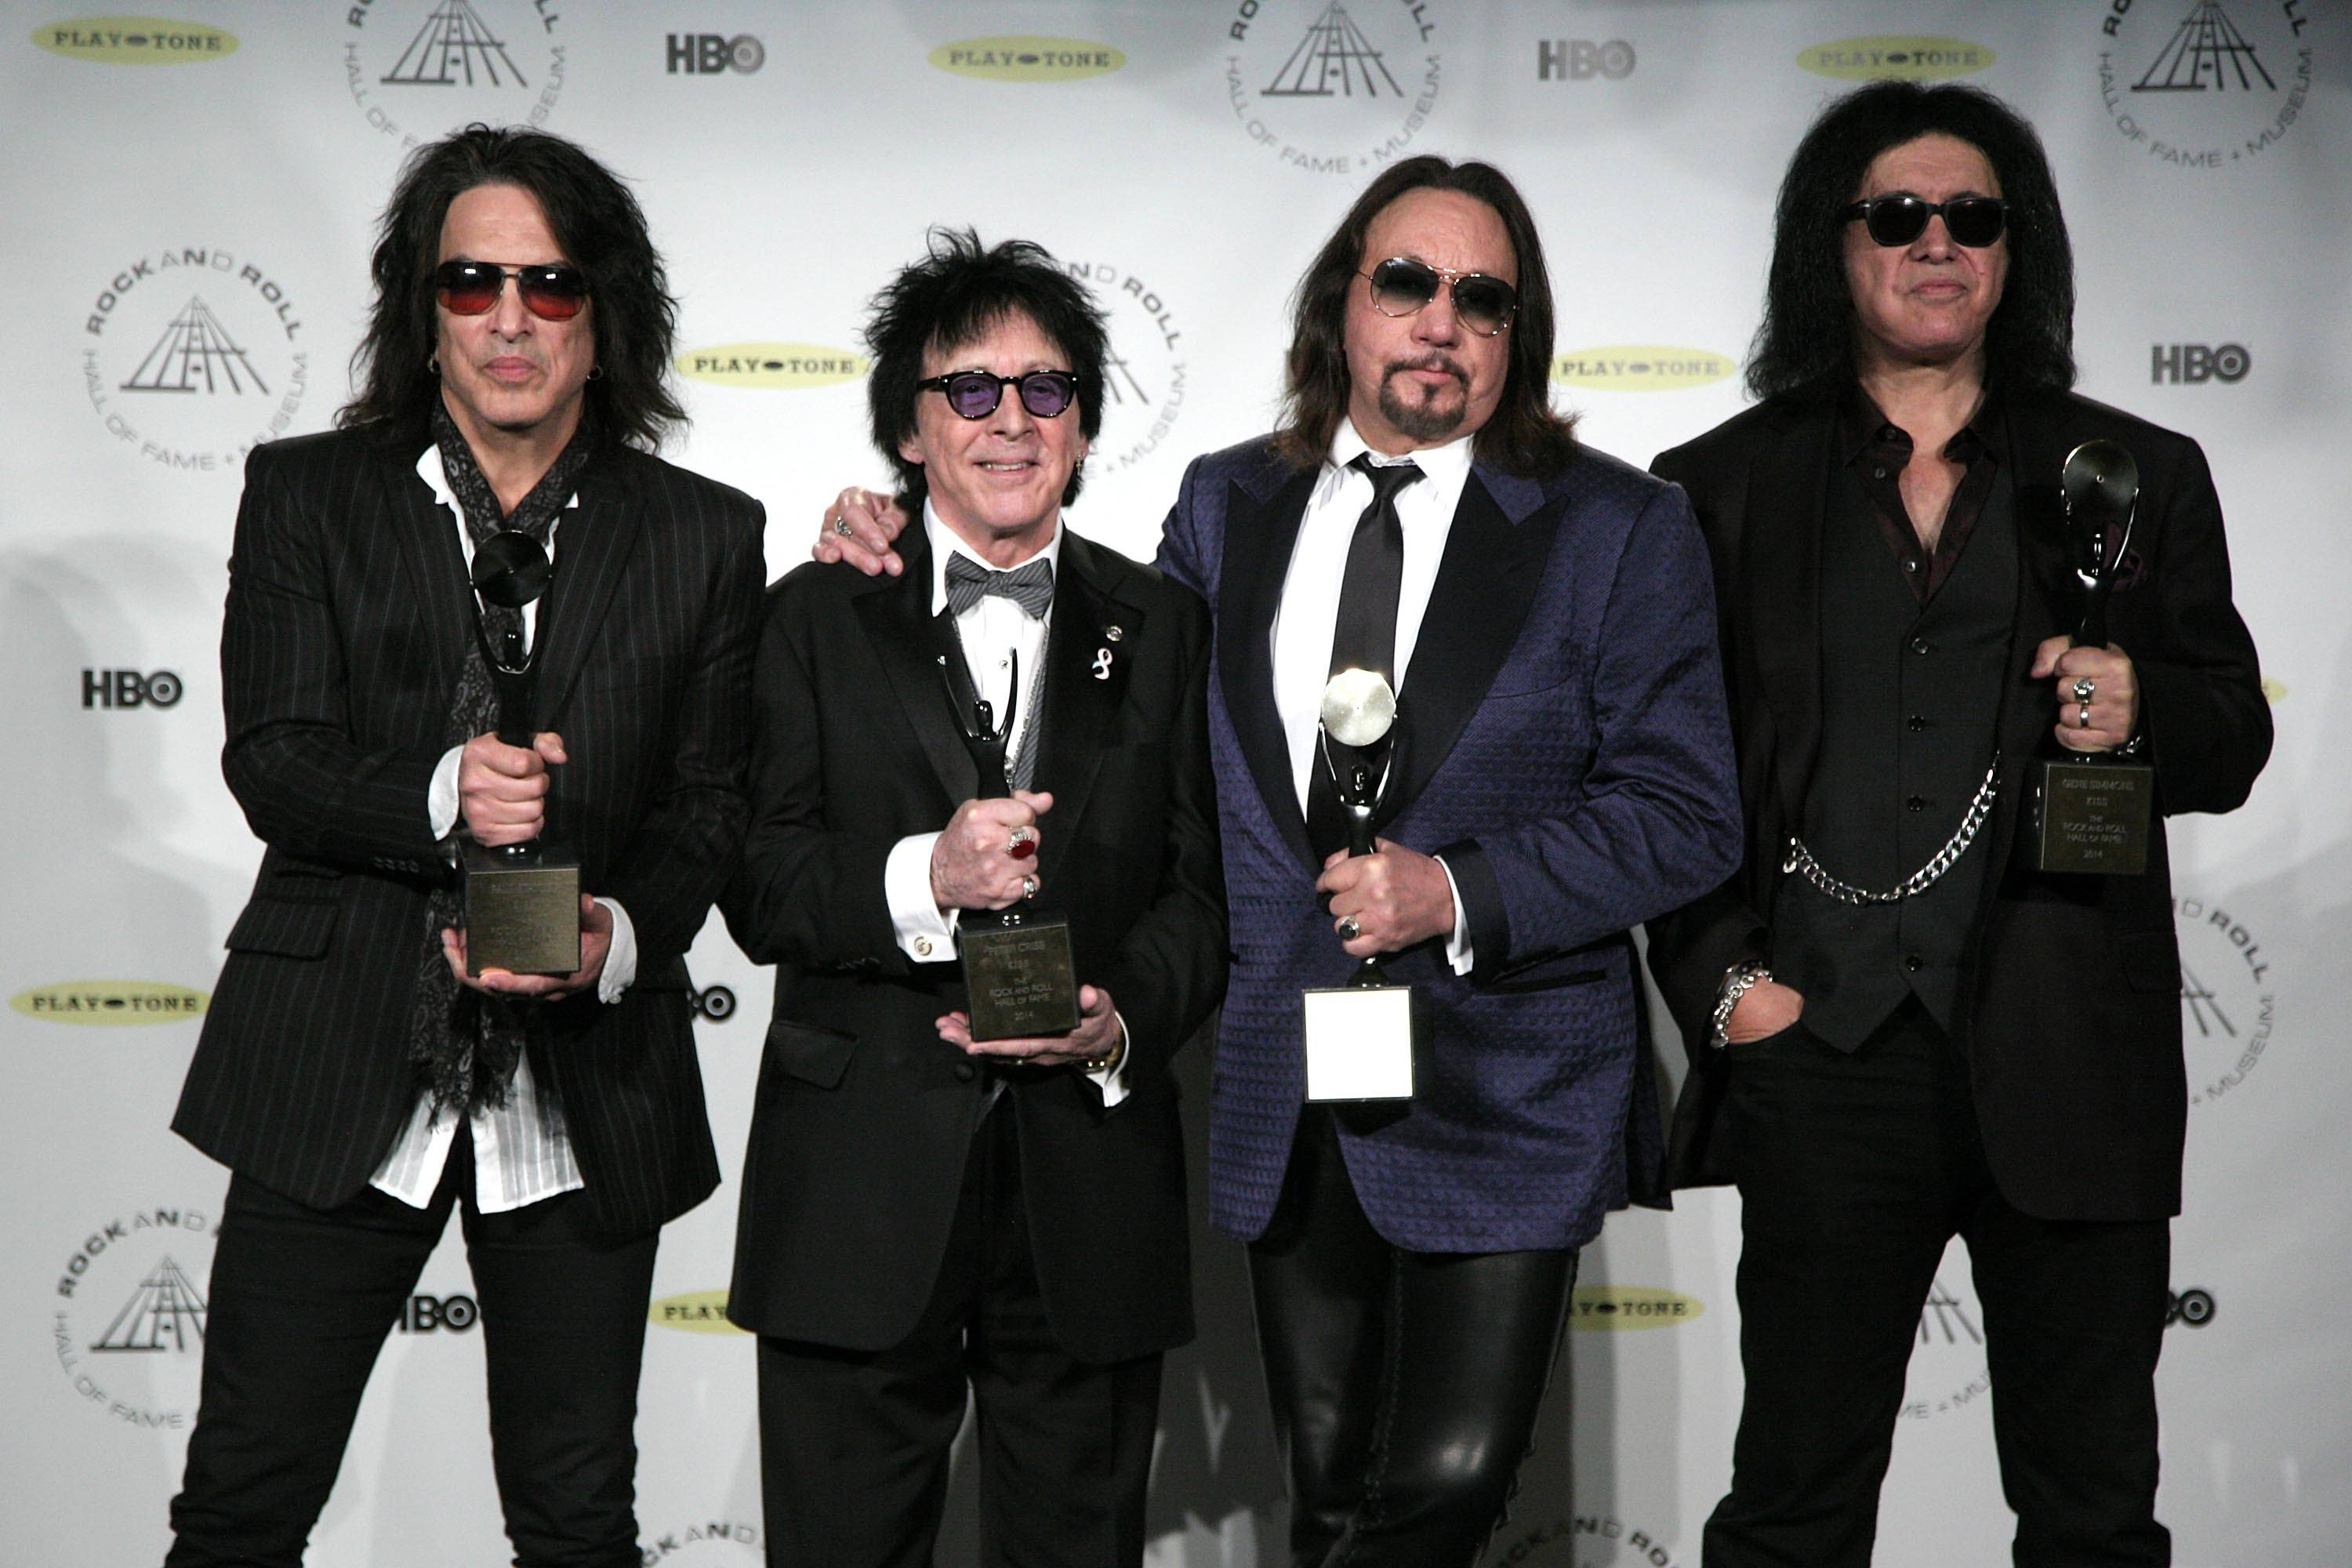 Kiss original band members Paul Stanley, Peter Criss, Ace Frehley and Gene Simmons were inducted into the Rock and Roll Hall of Fame Thursday.